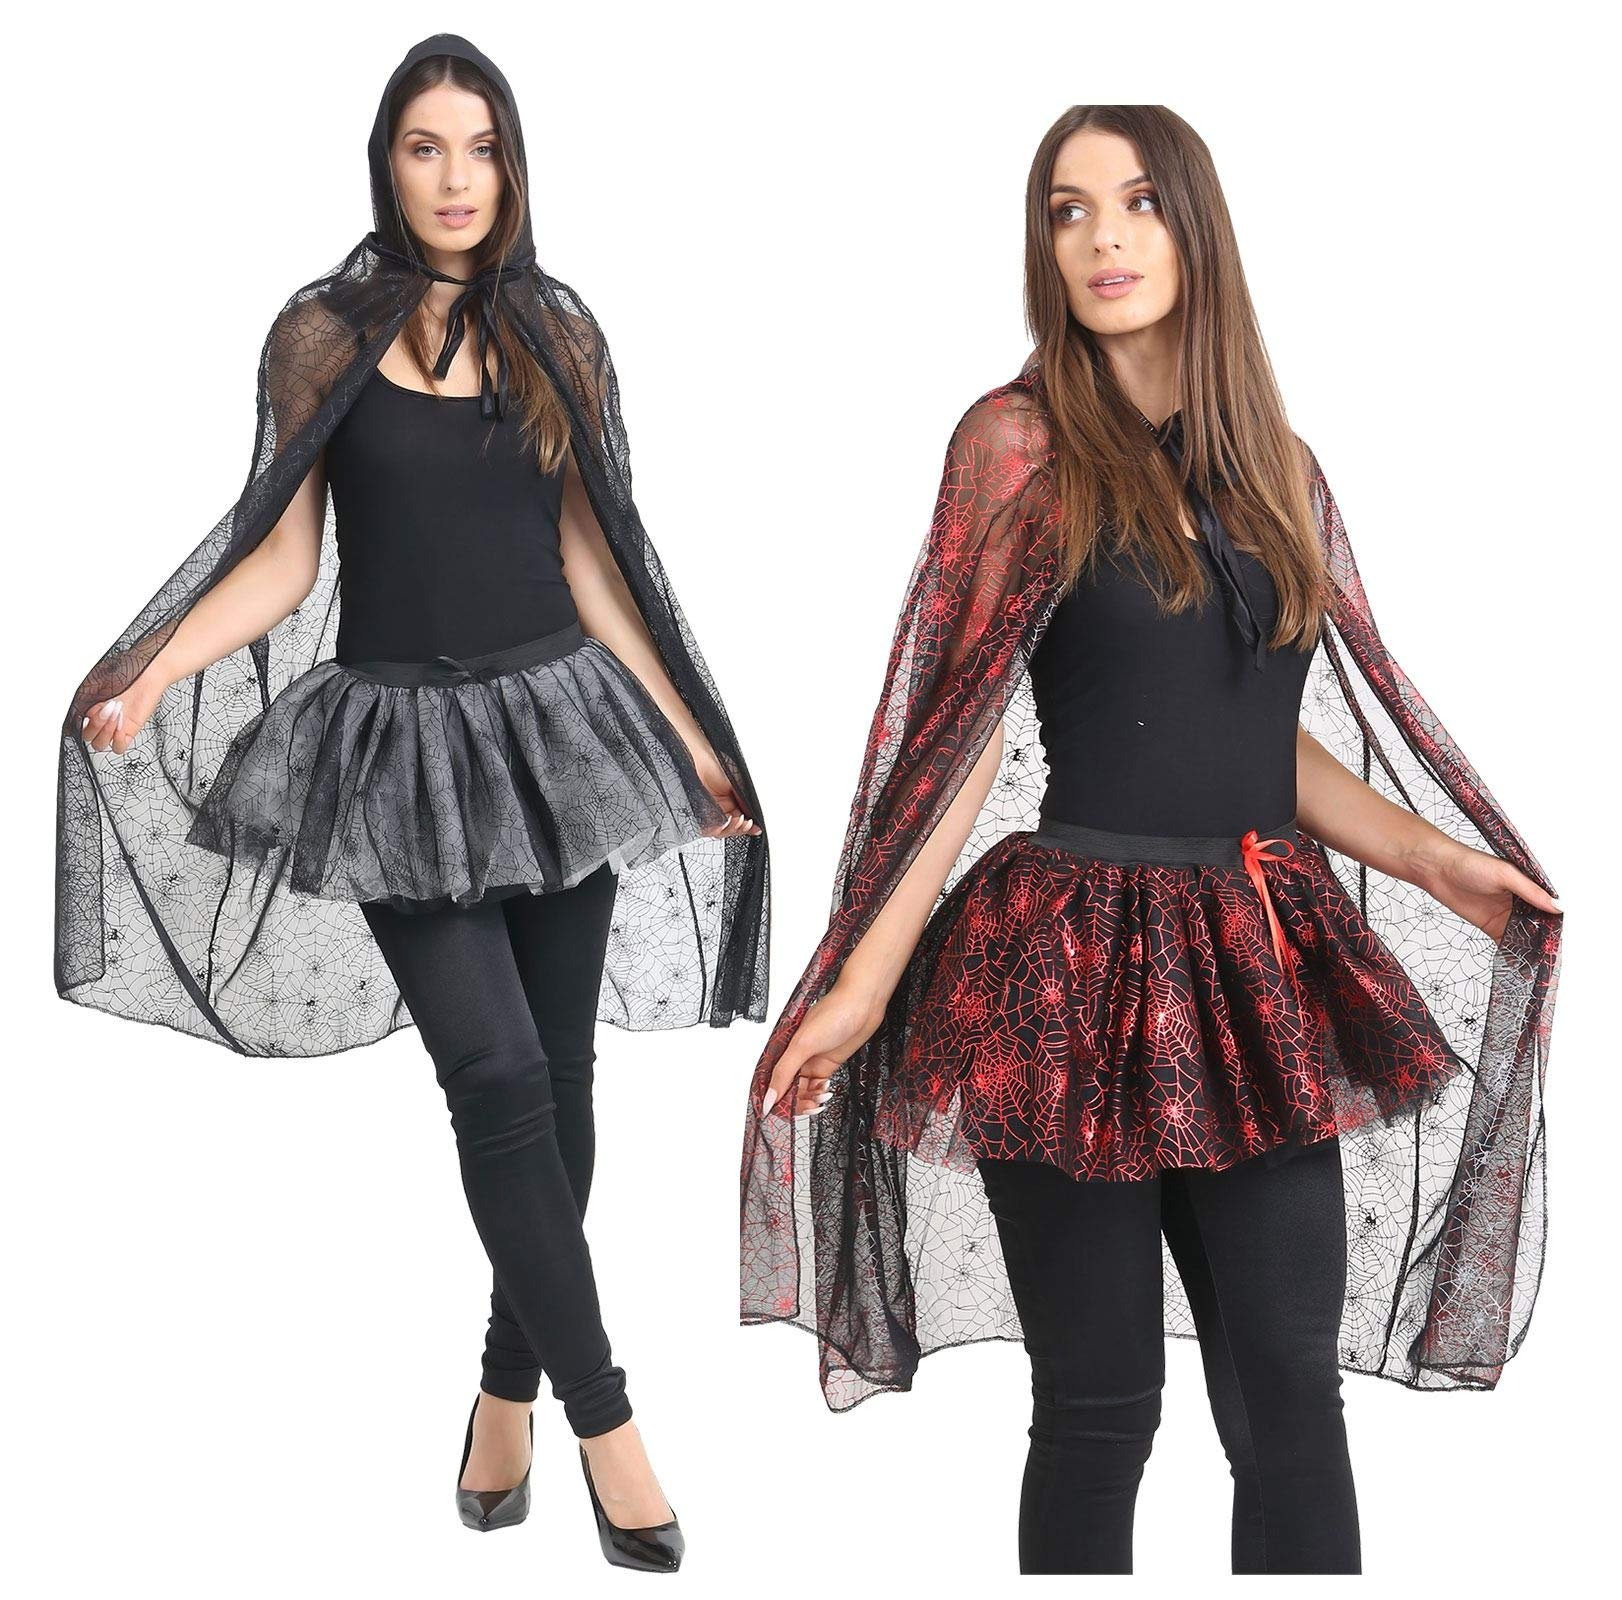 - 81b57XWxgFL - MA ONLINE Ladies Halloween Spider Web Costume Womens Night Out Fancy Dress Party Outfit